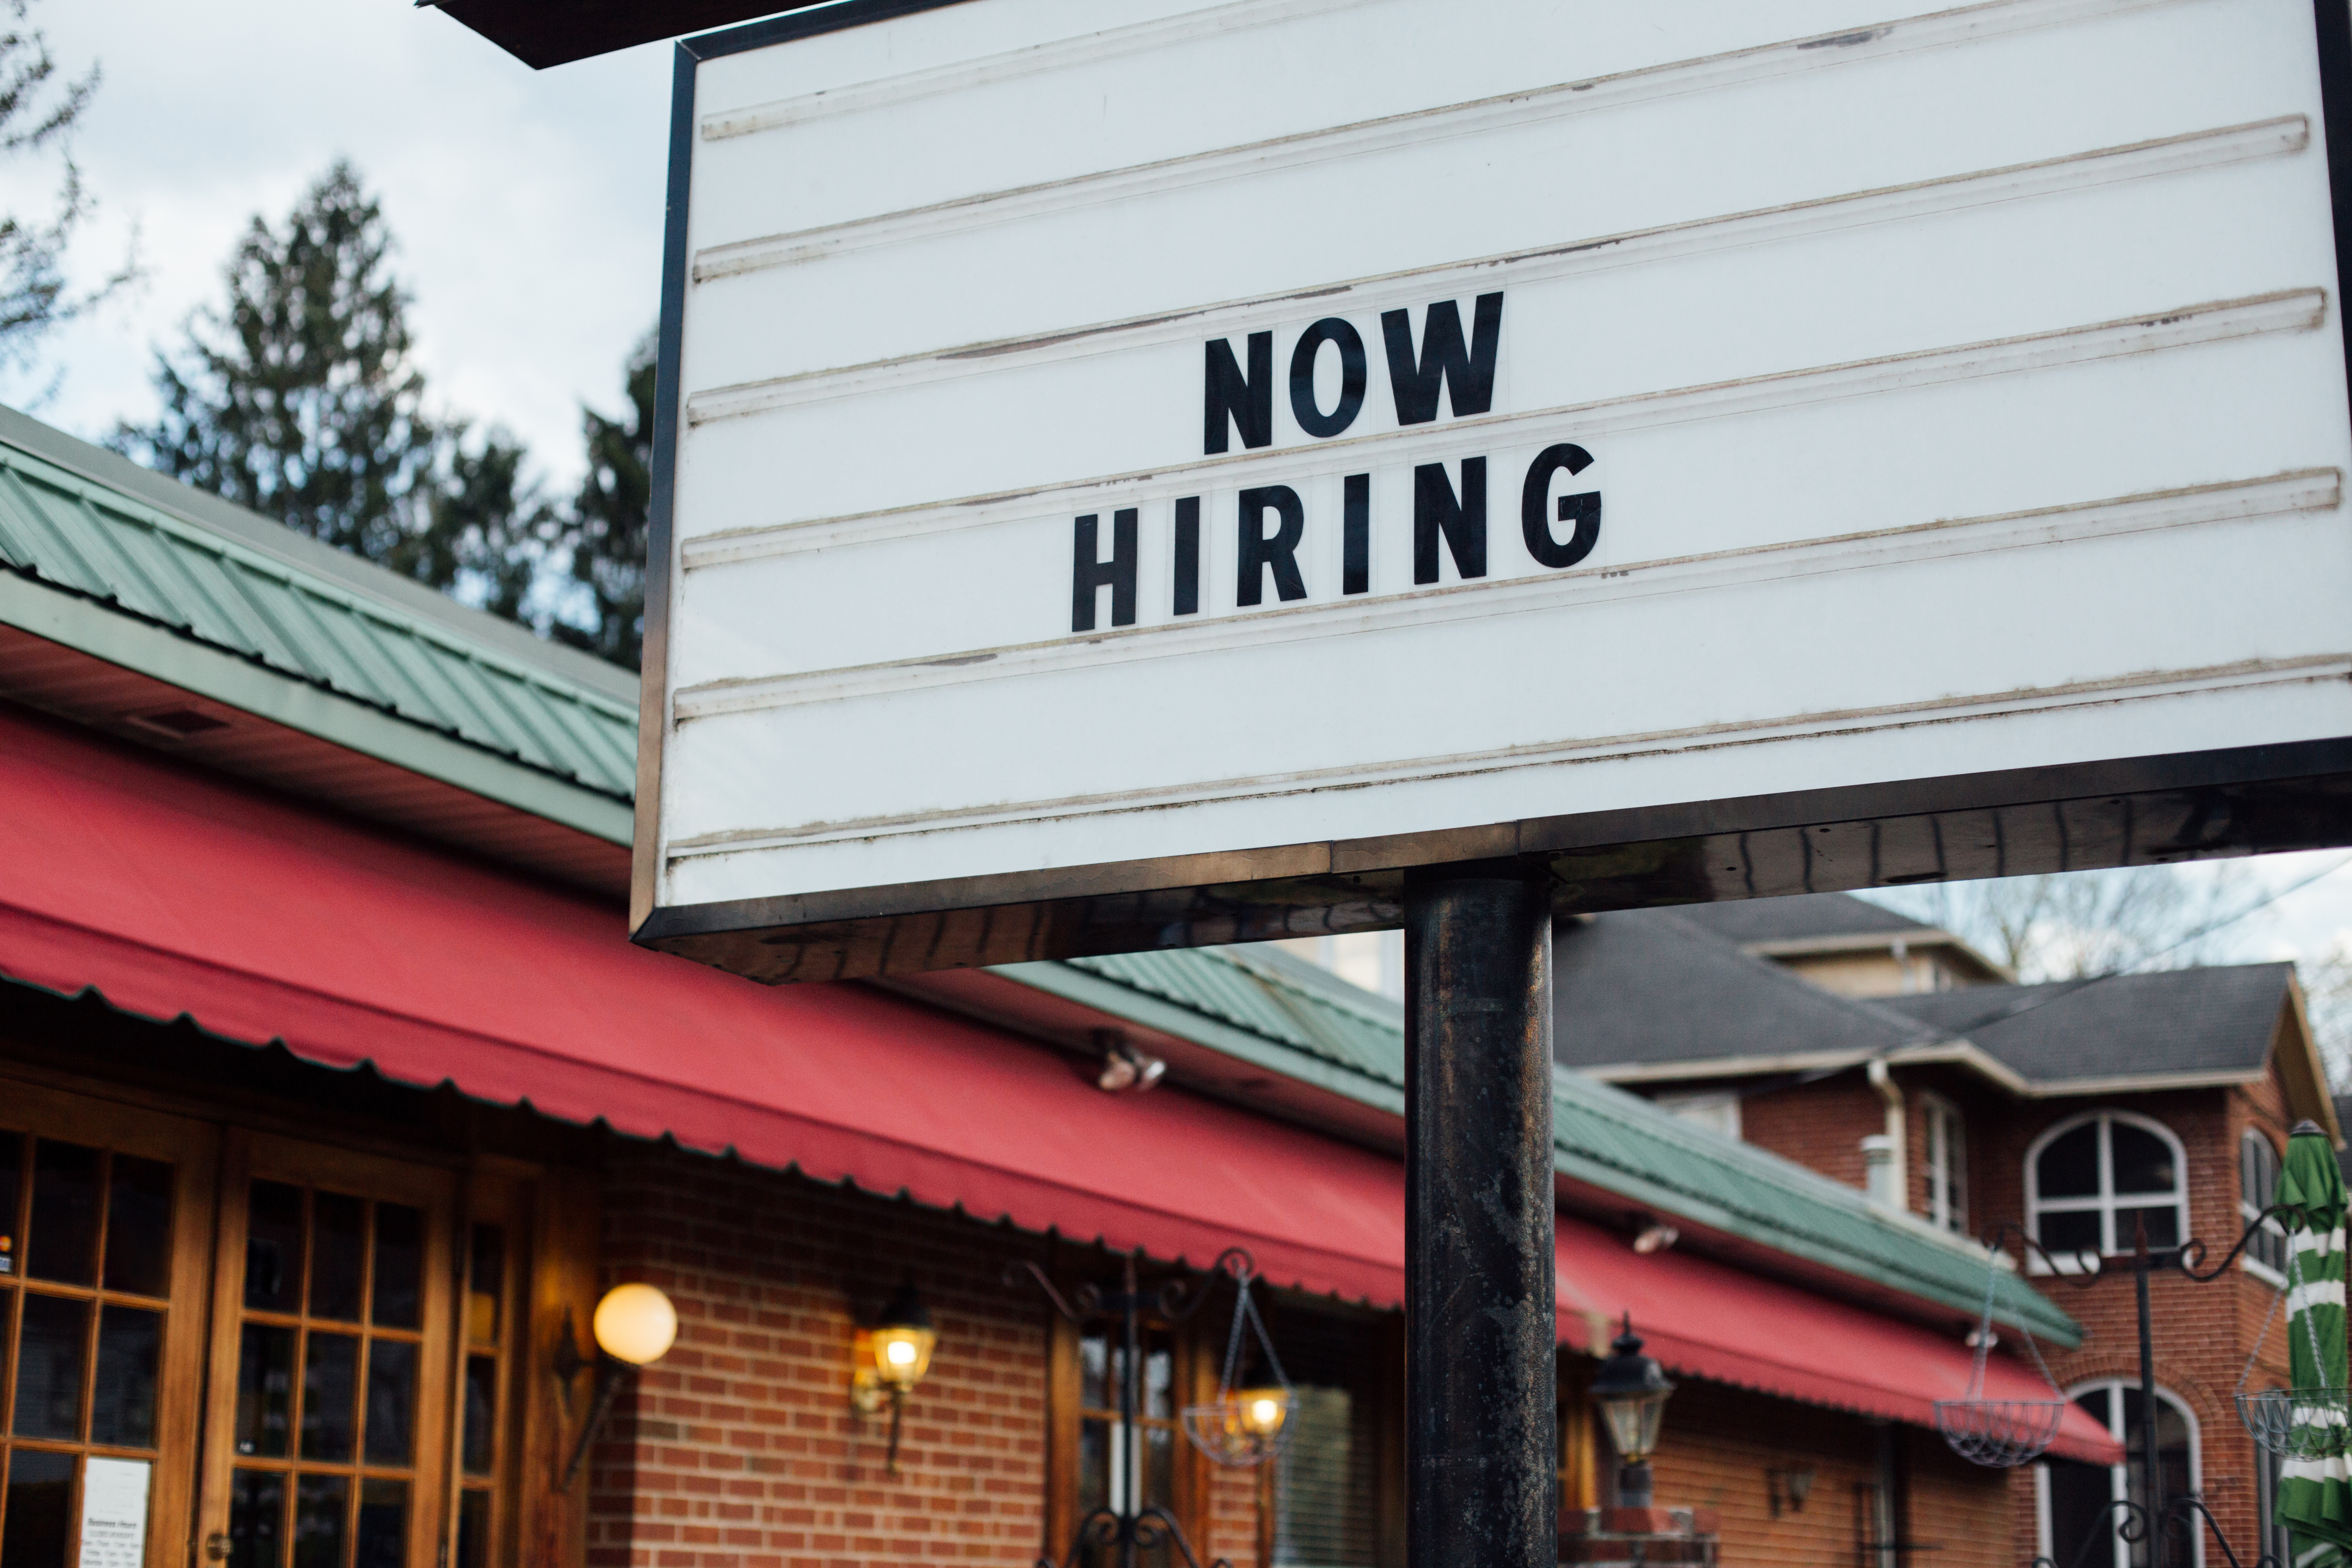 """A sign outside a brick restaurant reads """"NOW HIRING."""""""